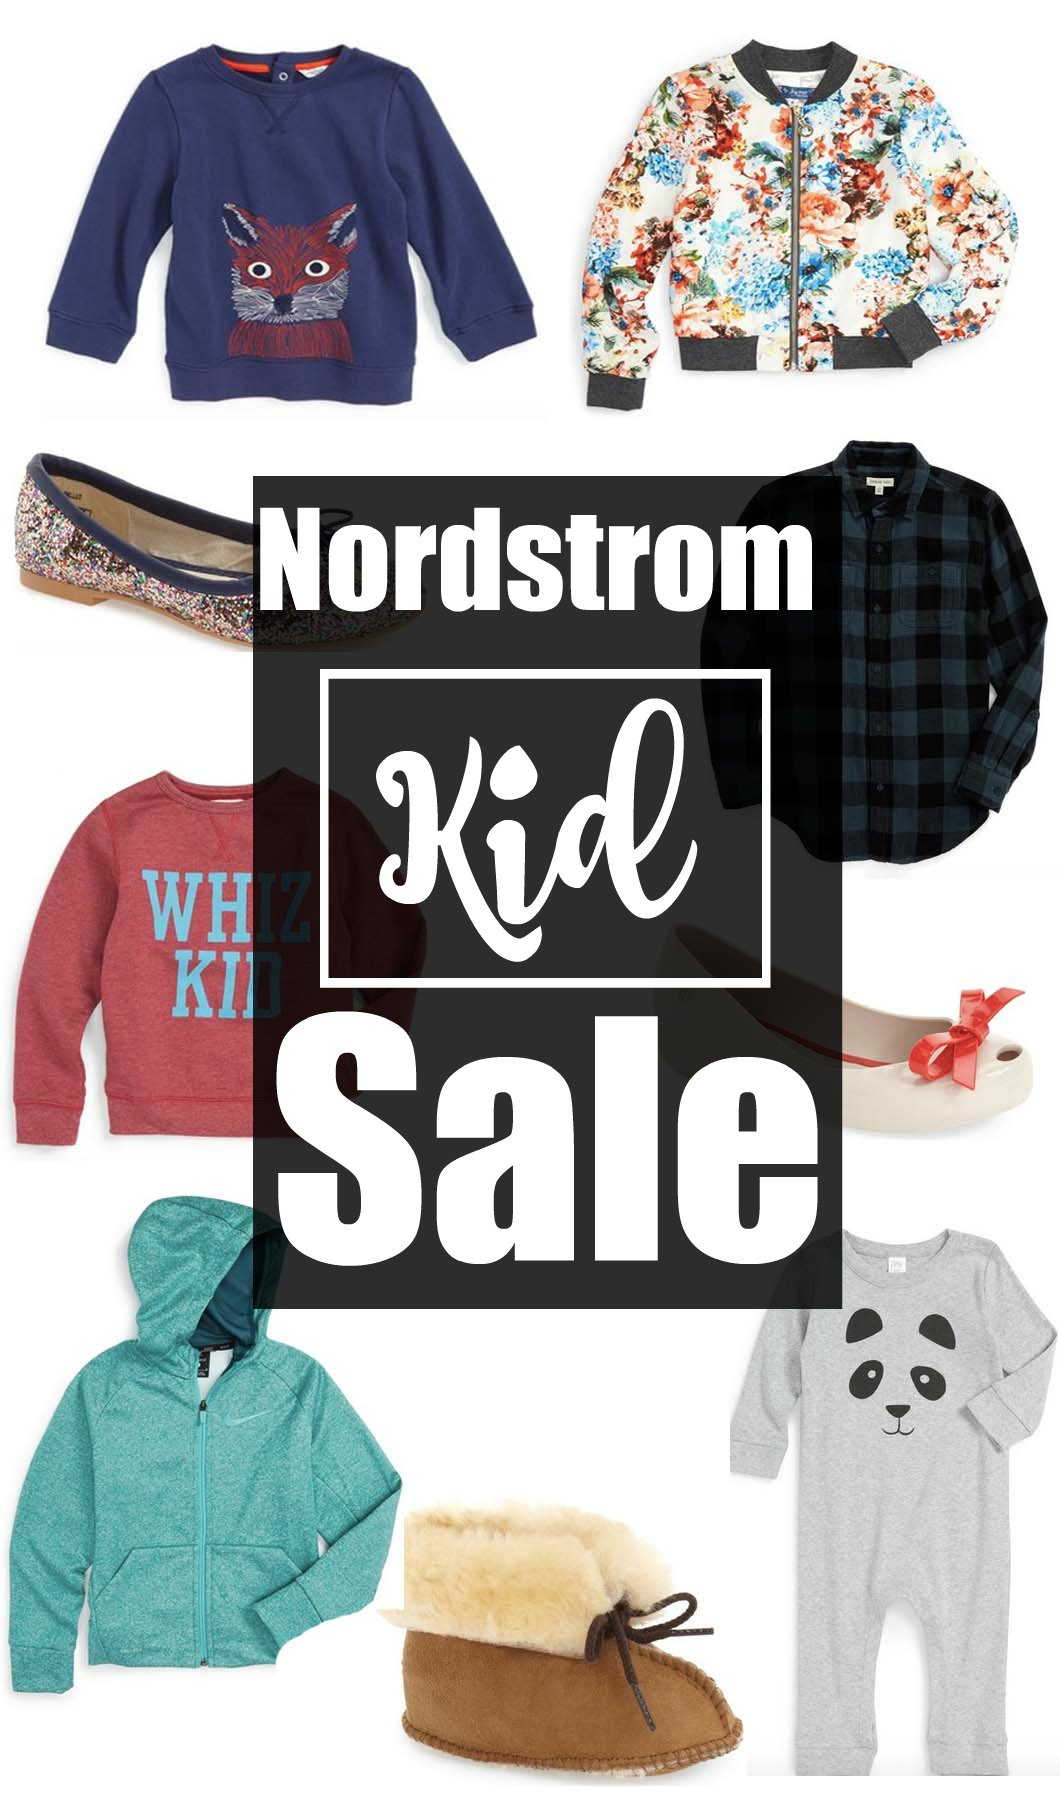 Nordstrom Kid Sale